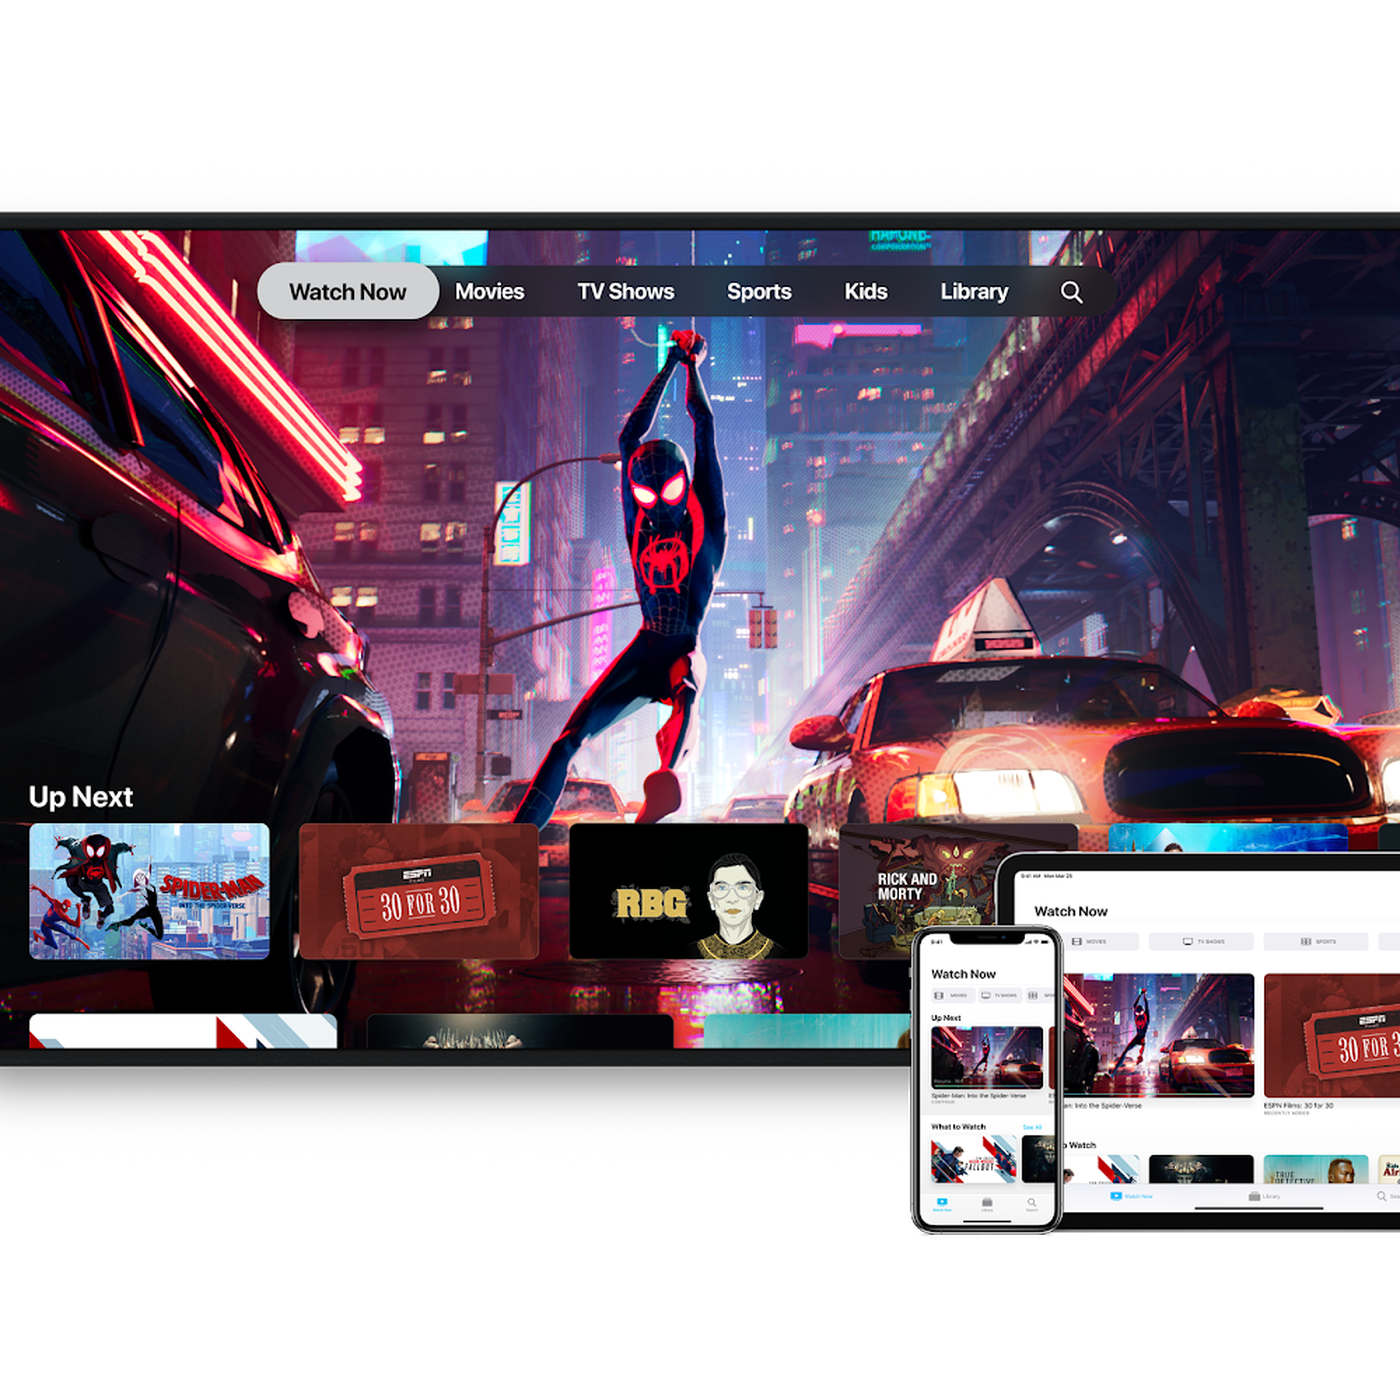 The new Apple TV app launches today on iOS, Apple TV, and Samsung